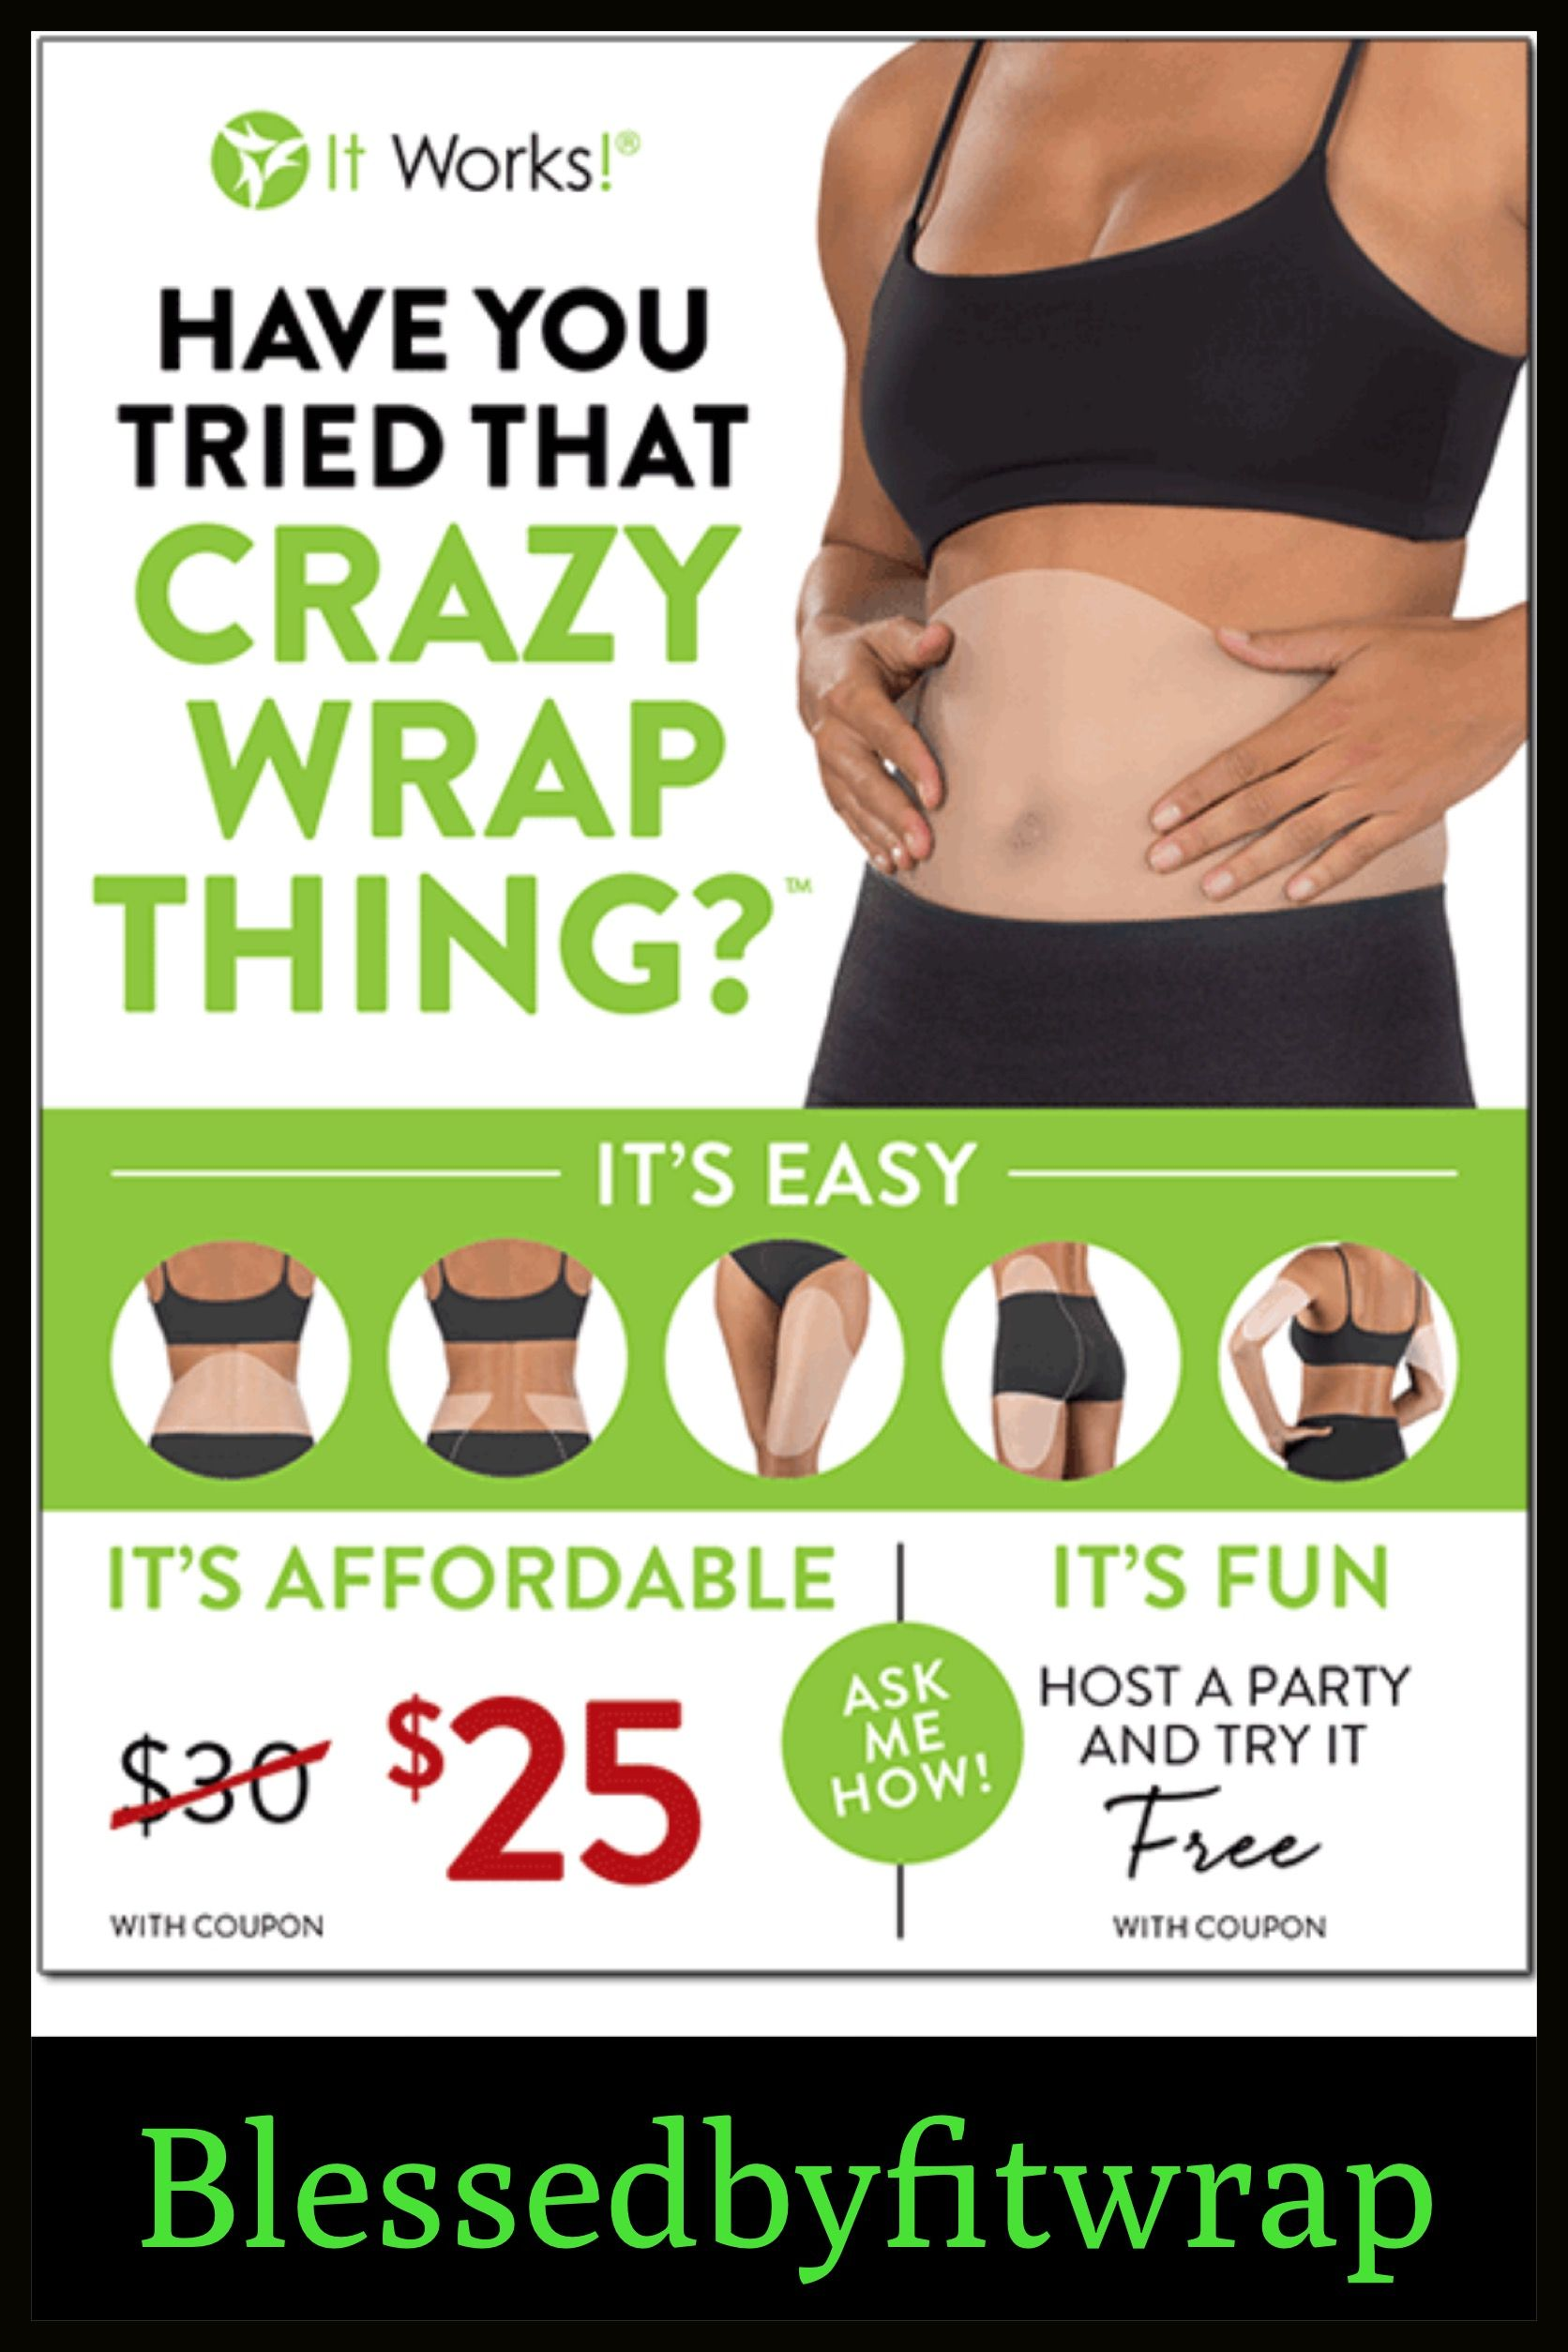 Pin by Erica Cathey on Blessed by fit wraps  Pinterest  Crazy wrap